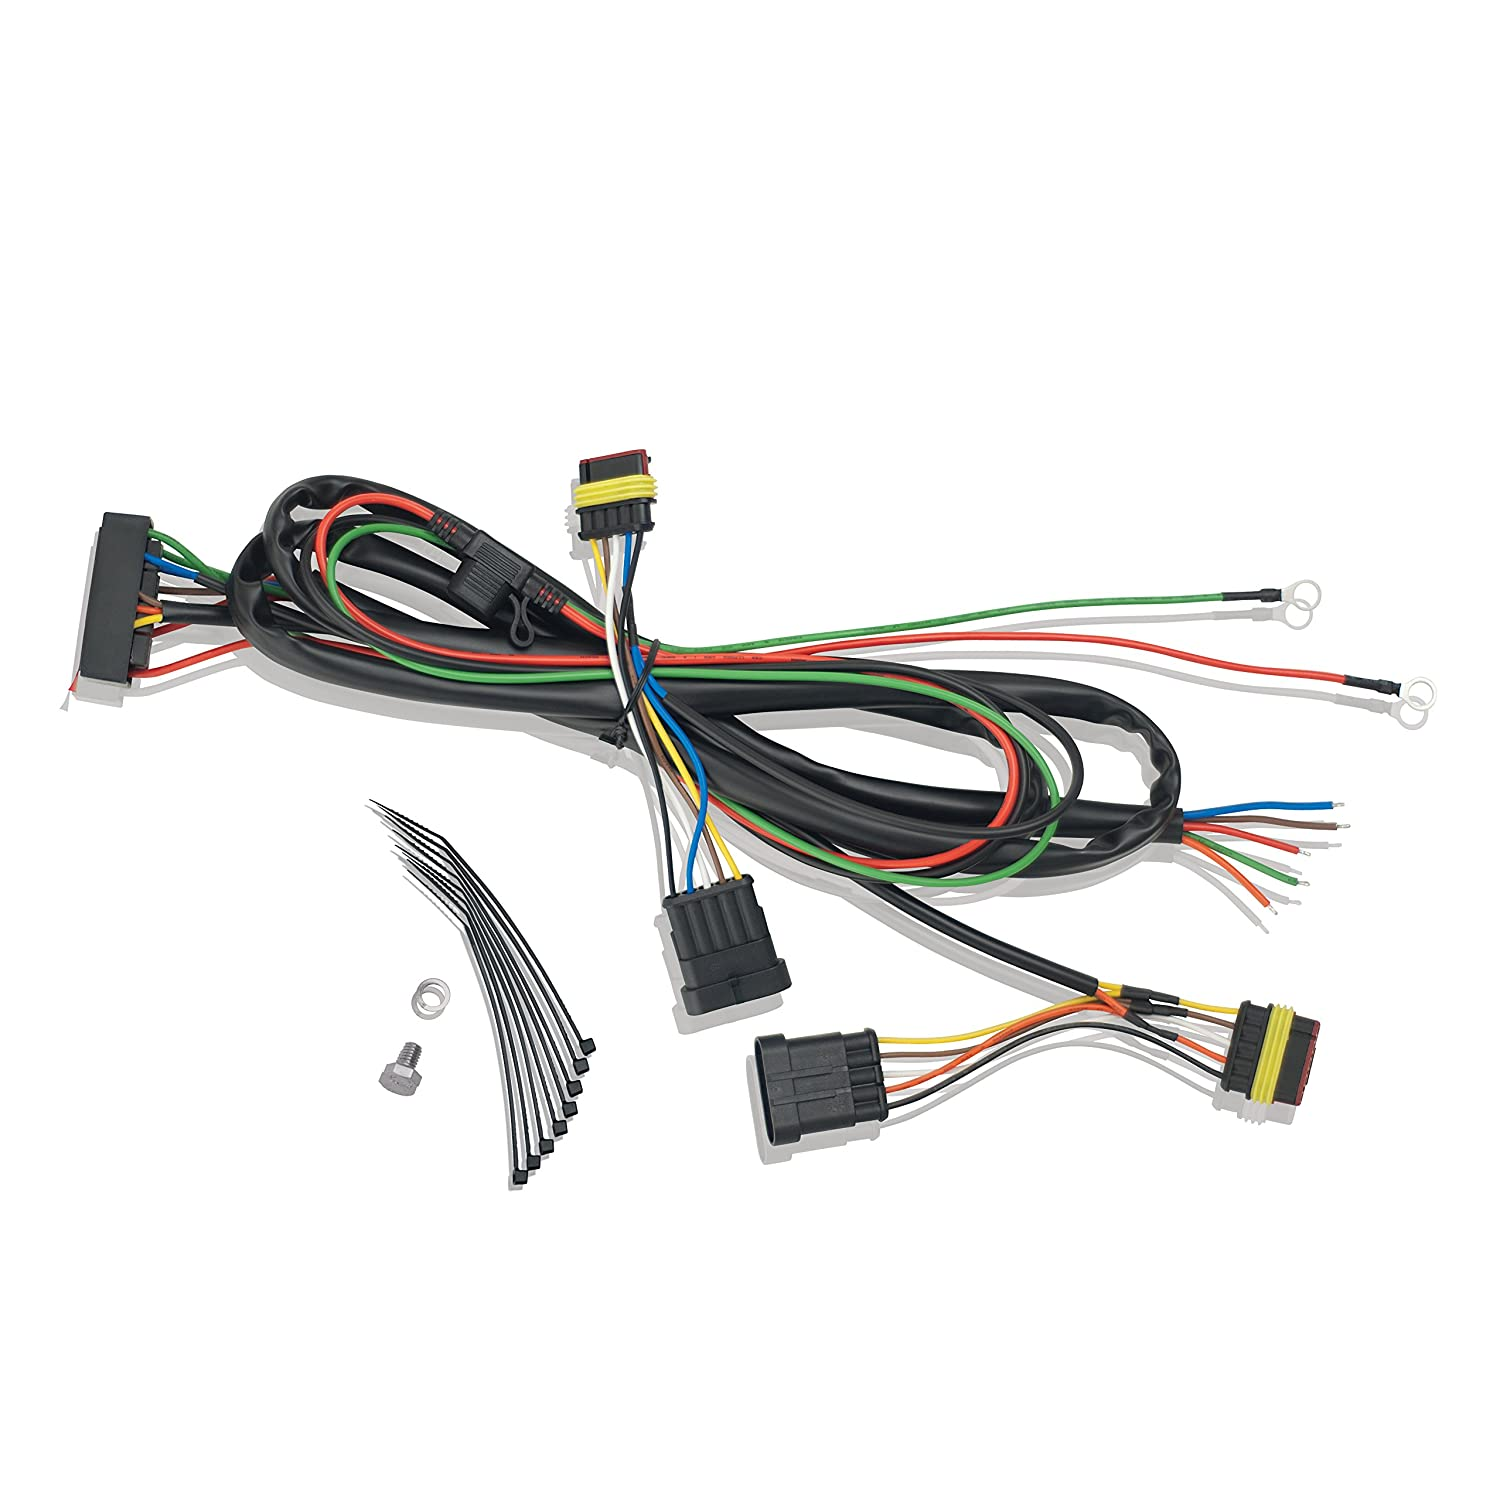 81dZHpG1lCL._SL1500_ amazon com show chrome accessories 41 162 trailer wire harness can am spyder trailer wiring harness at eliteediting.co